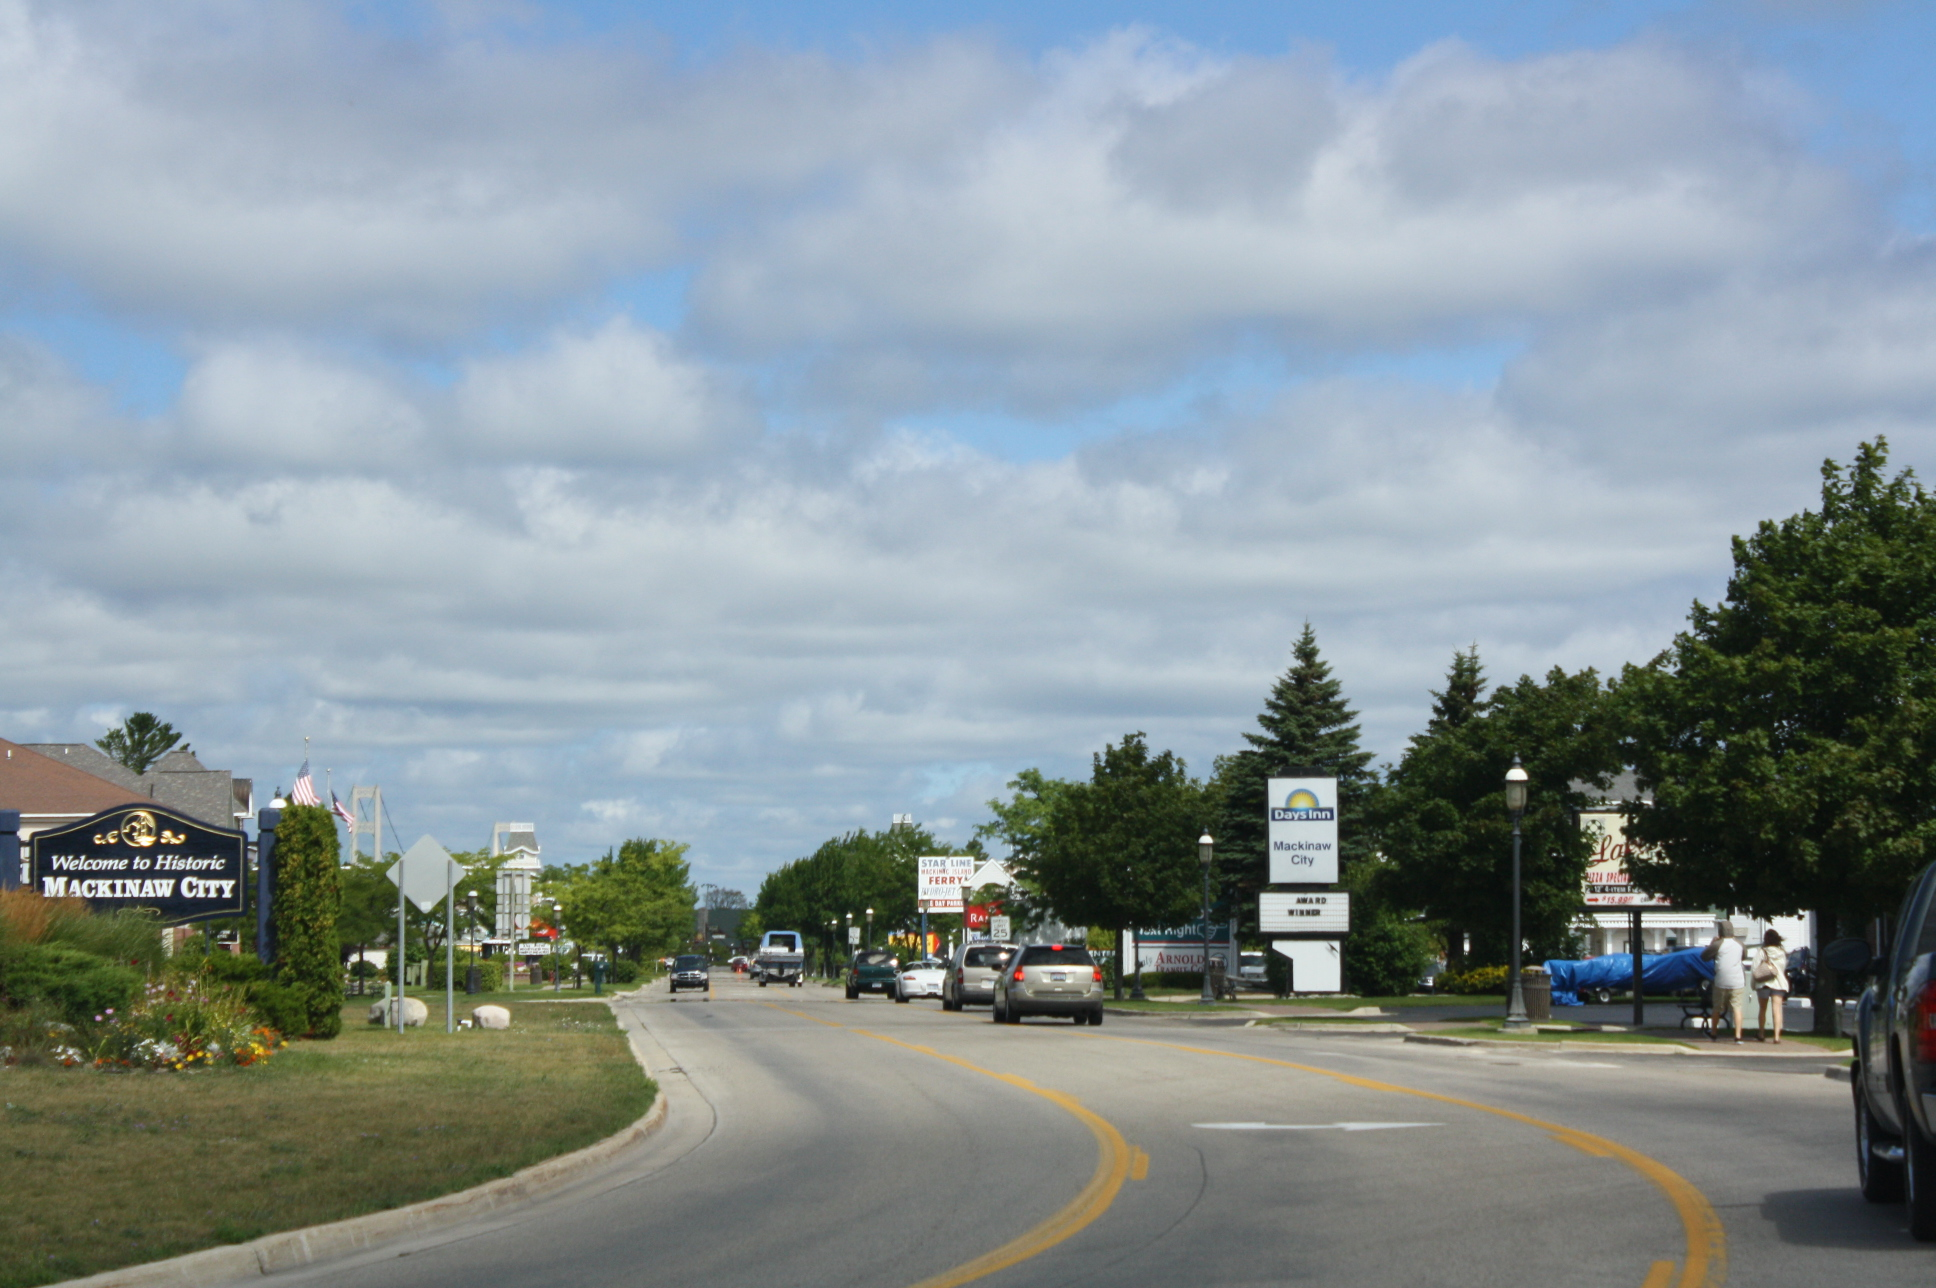 Mackinaw City Michigan Hotel District